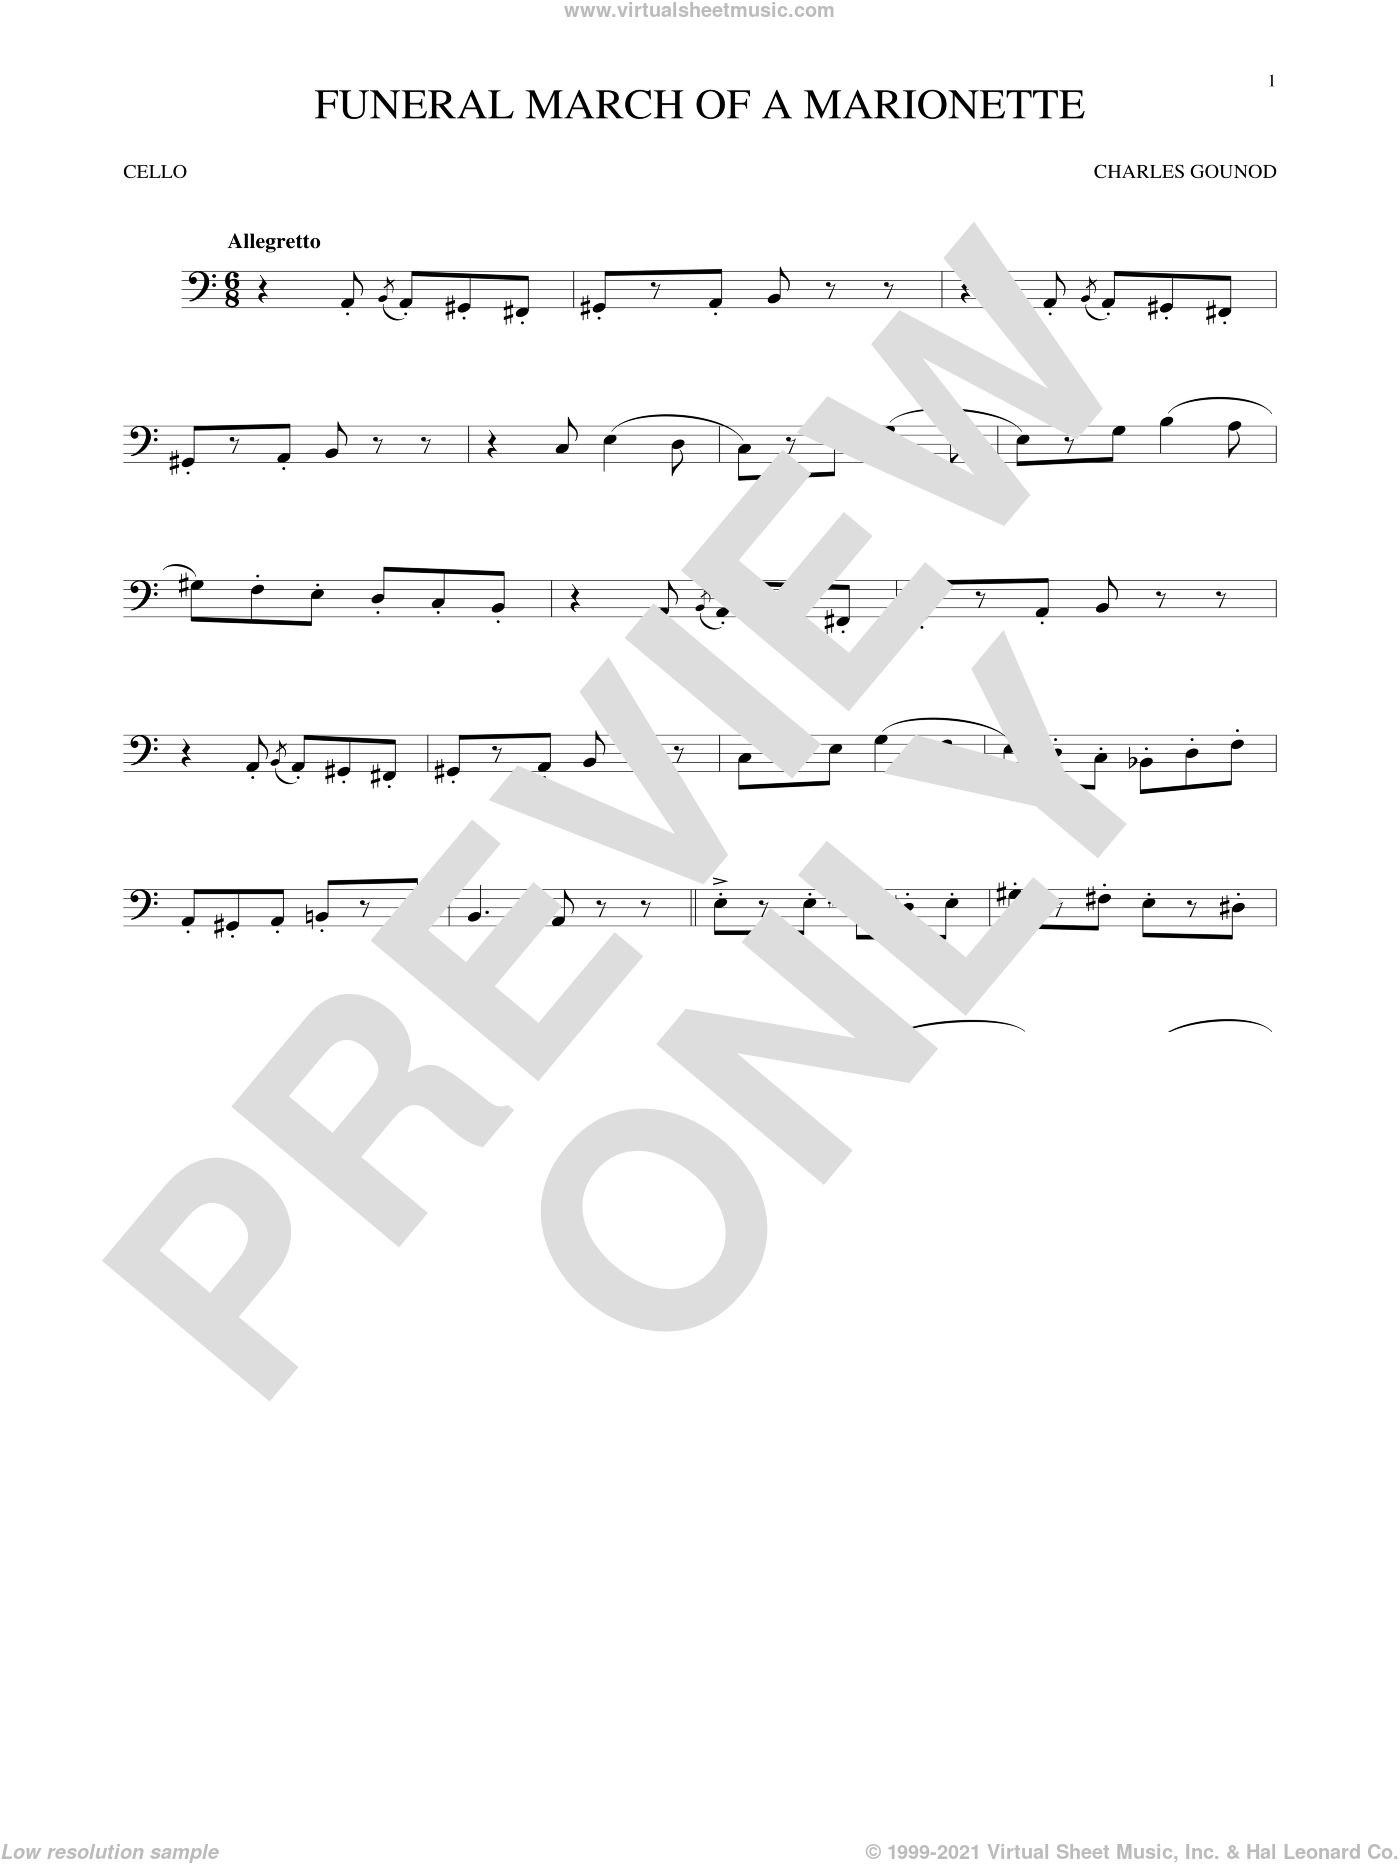 Funeral March Of A Marionette sheet music for cello solo by Charles Gounod, classical score, intermediate skill level